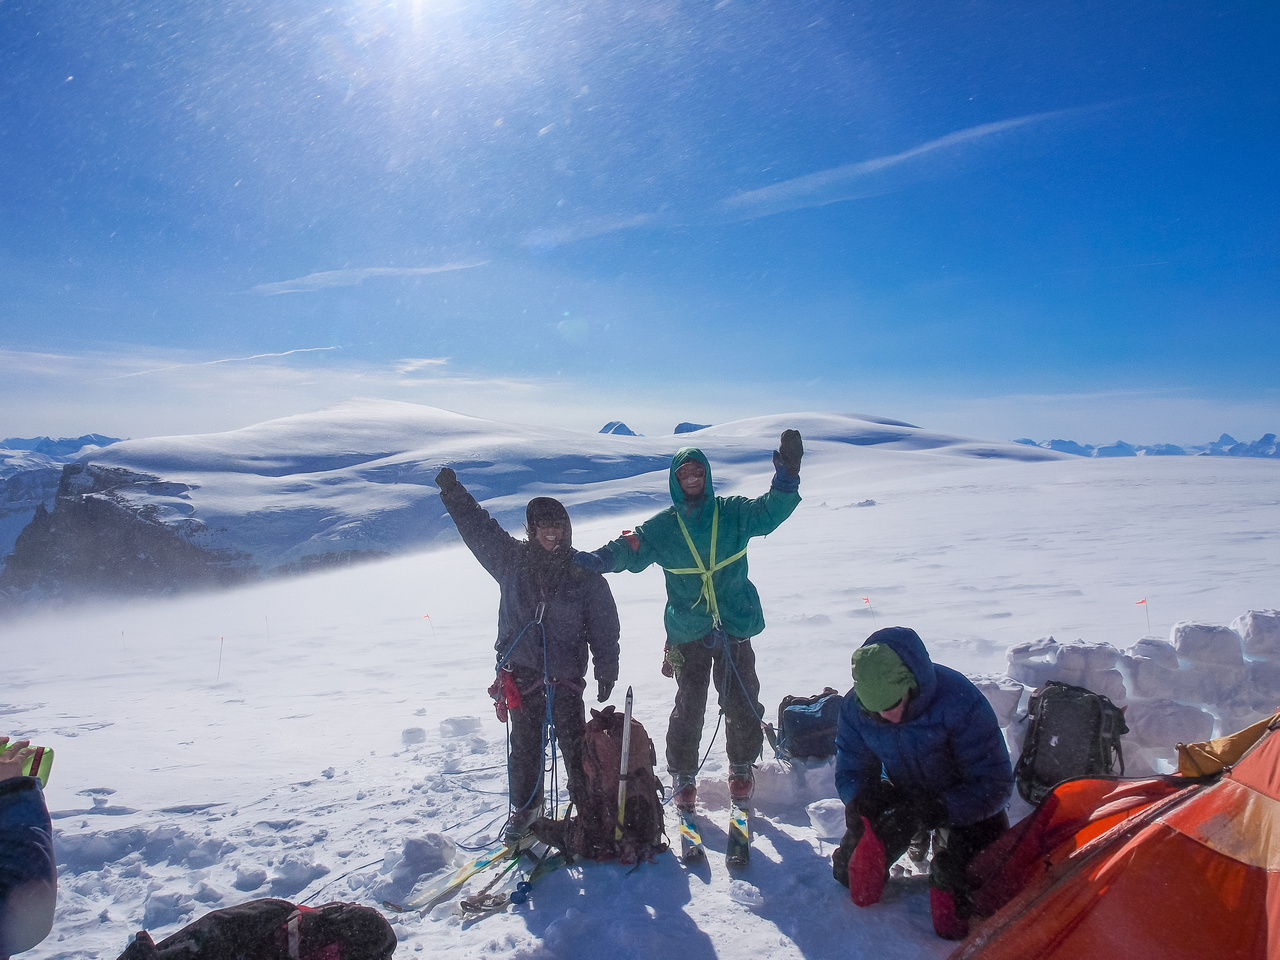 Fabrice and Josee stop by for a visit on their way up North Twin. Note the howling wind in the background!